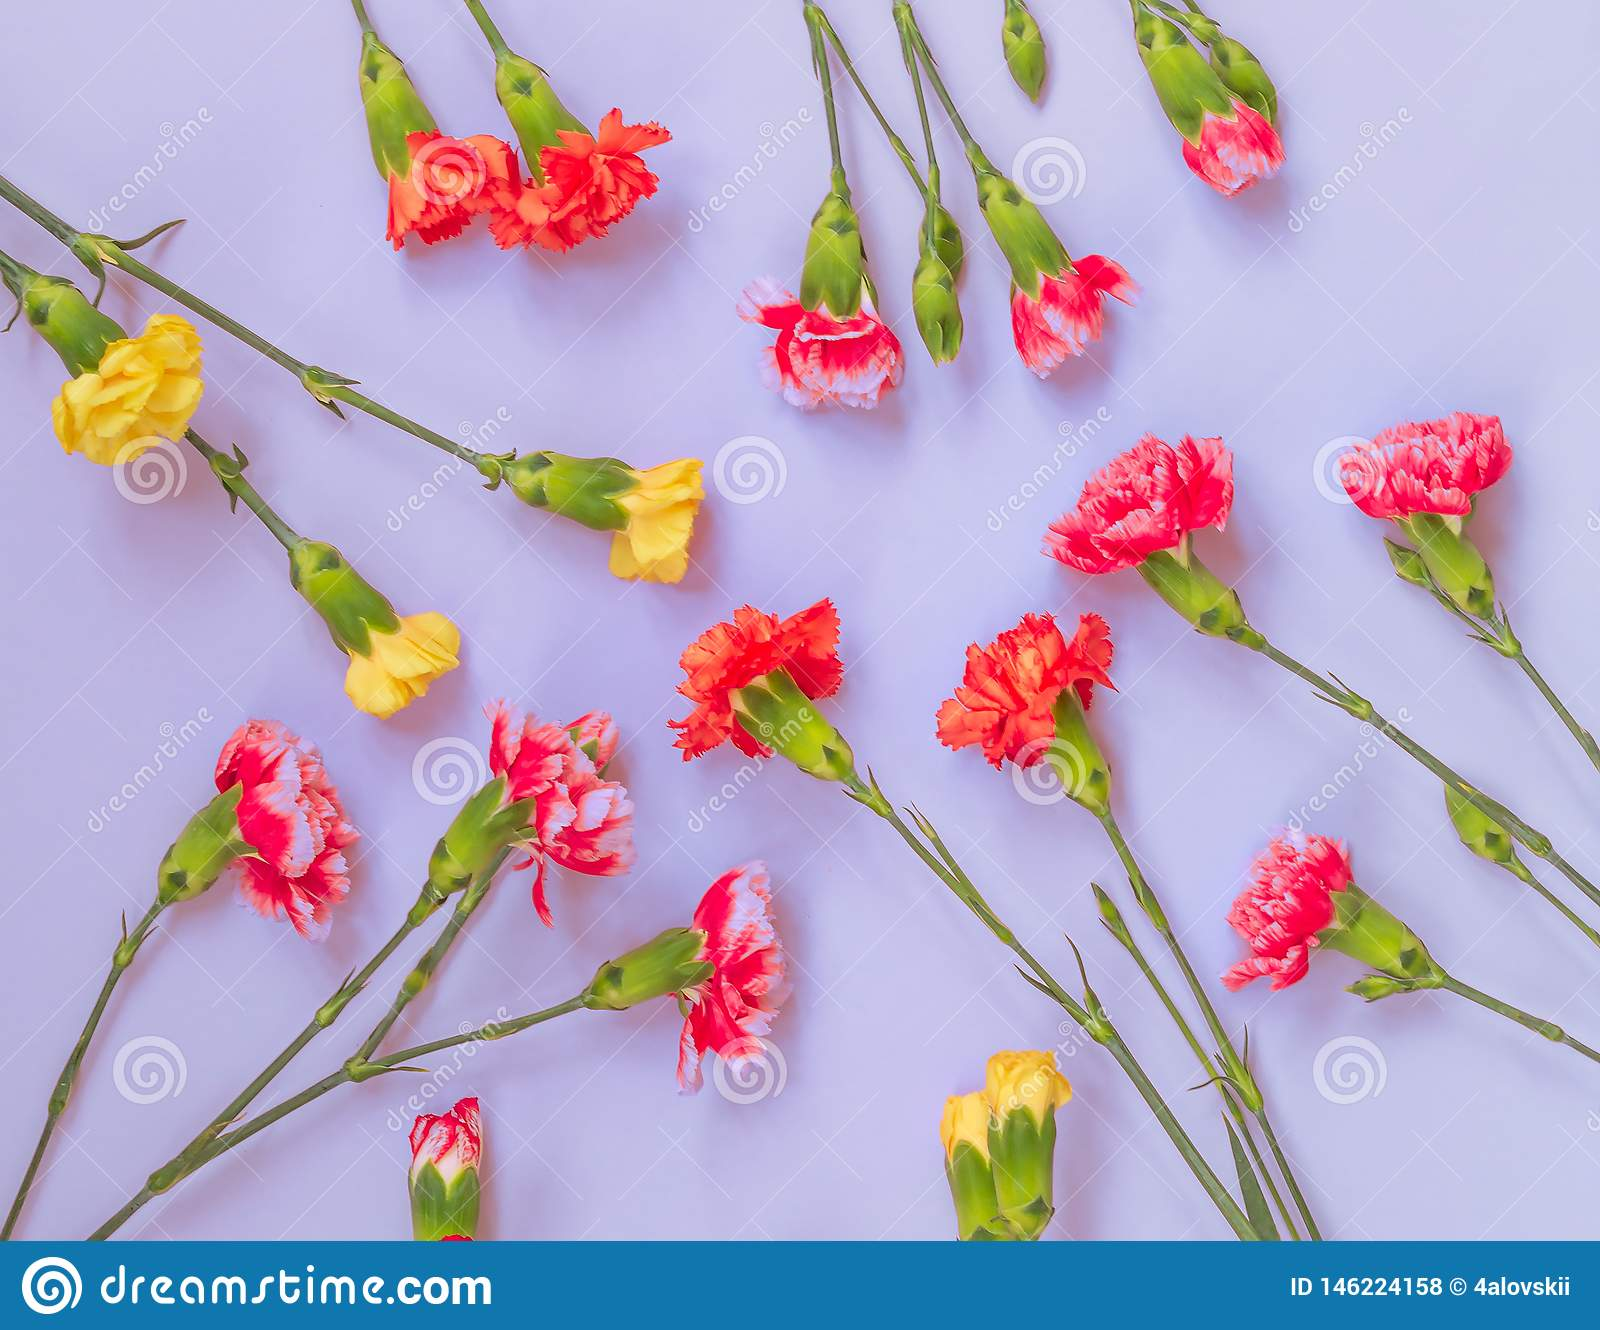 Colorful carnation flowers on light blue background. Flat lay, Top view